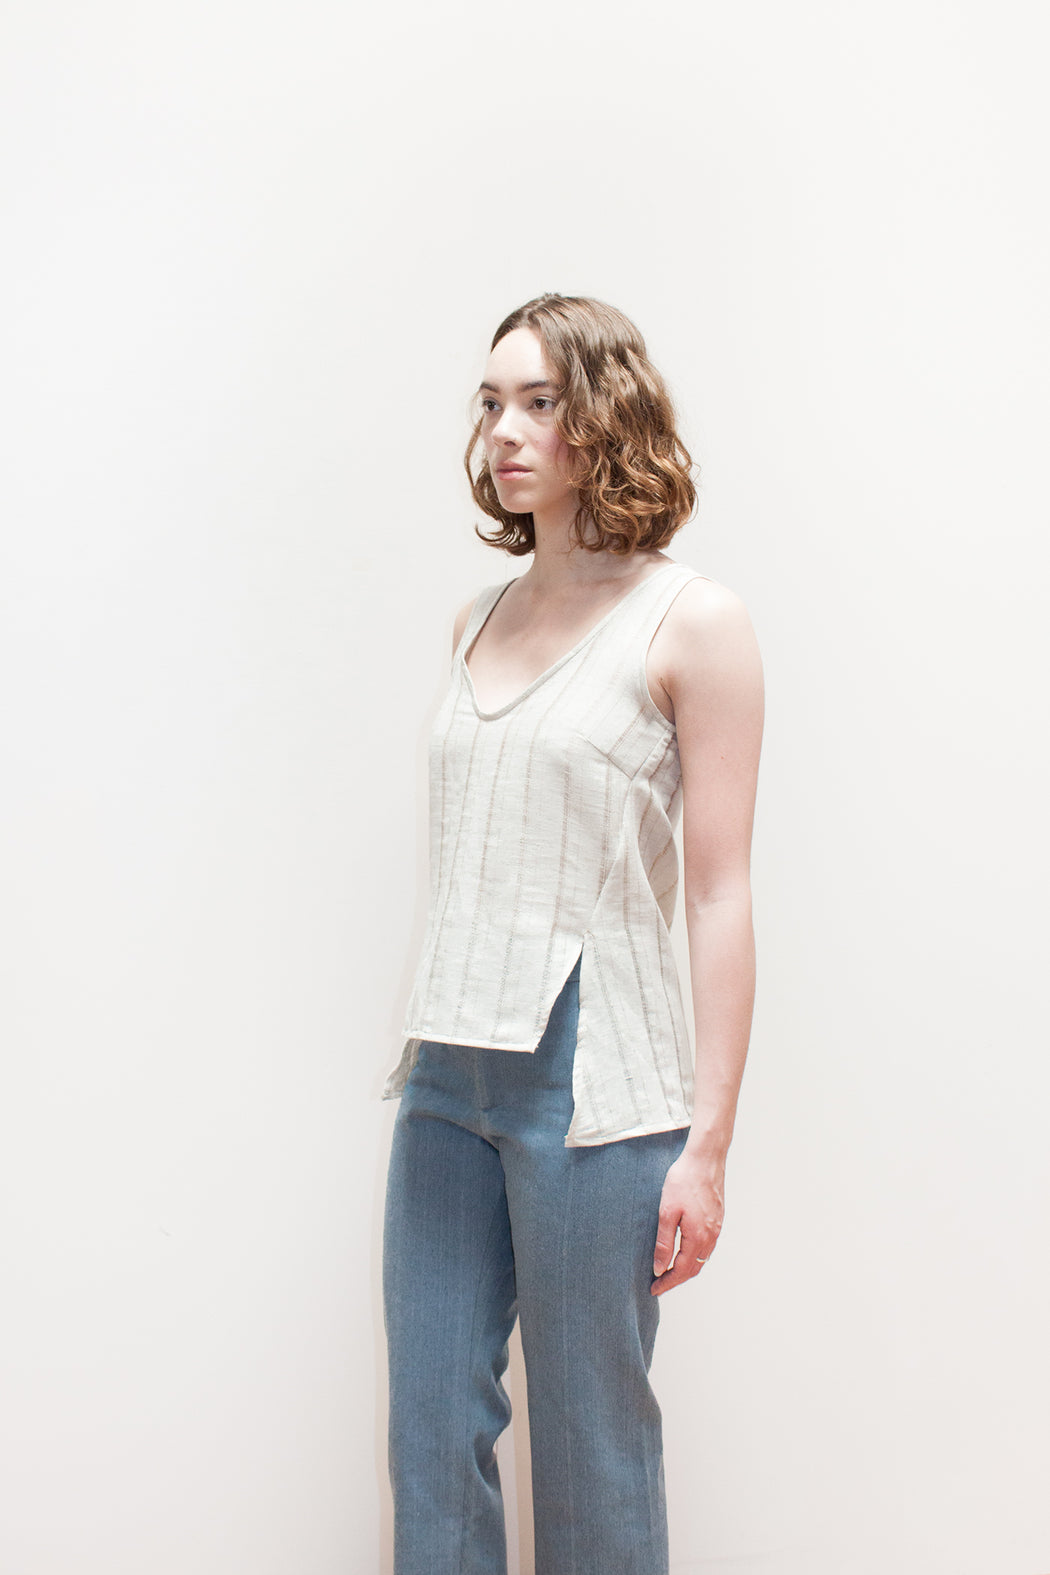 Vincetta Ethical Fashion | Roan Tank | Hazel & Rose